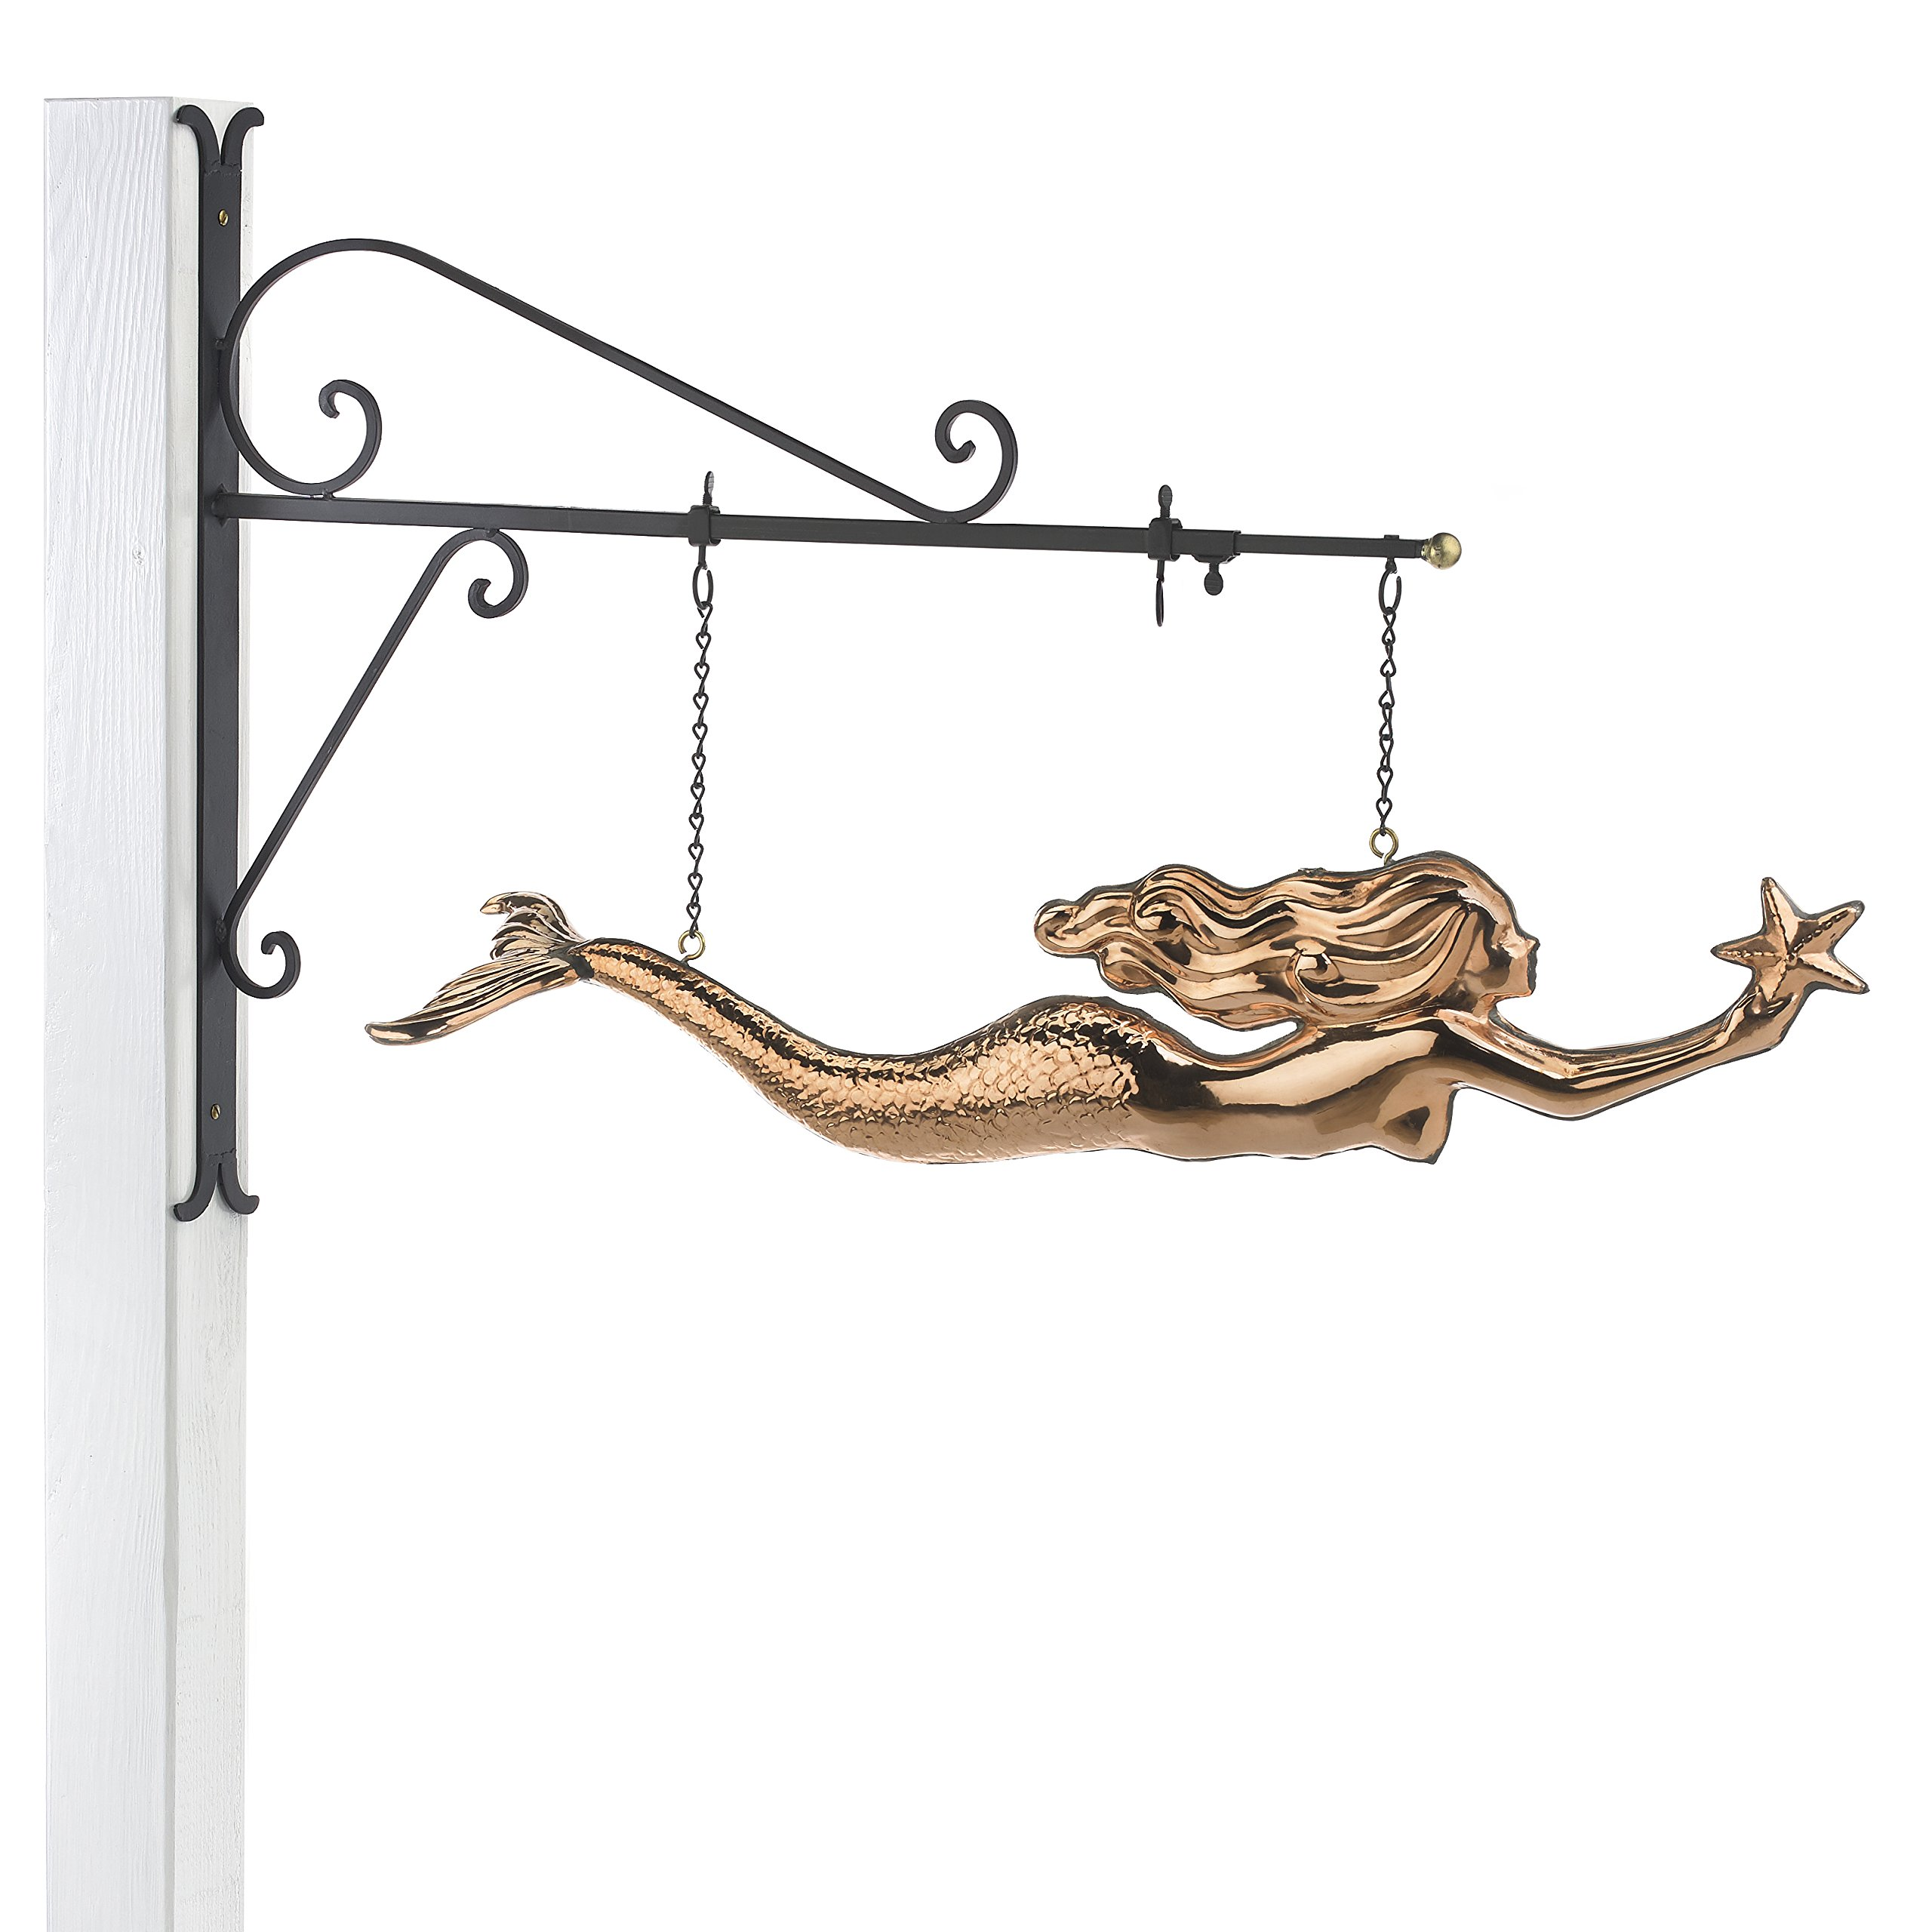 Good Directions Hanging Mermaid with Starfish Pure Copper Weathervane Sign Decorative Scroll Wall Bracket - Welcome Sign Home/Entrance/Entryway Décor